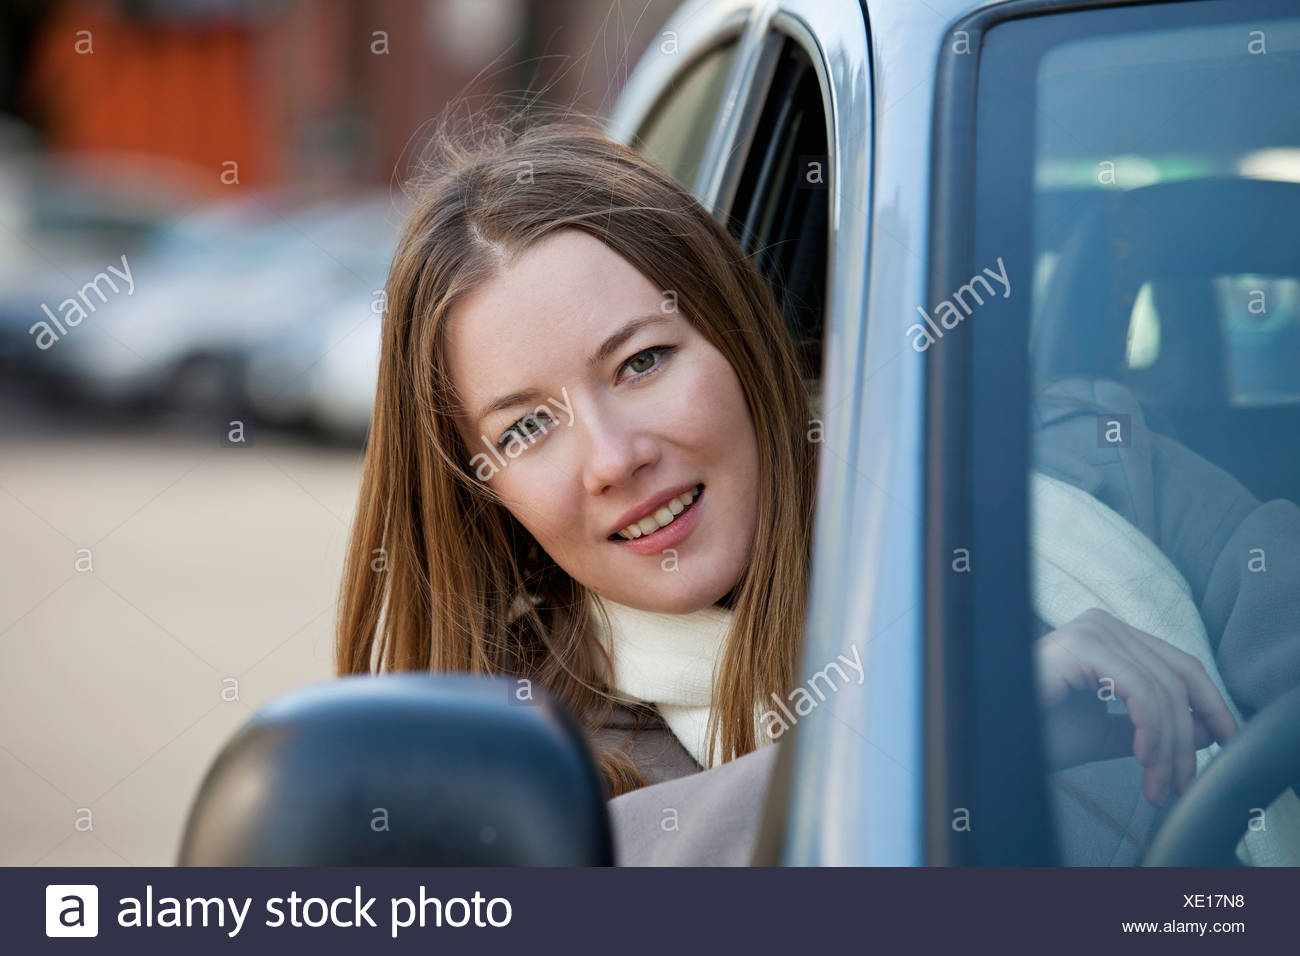 Woman driver with head out of window - Stock Image